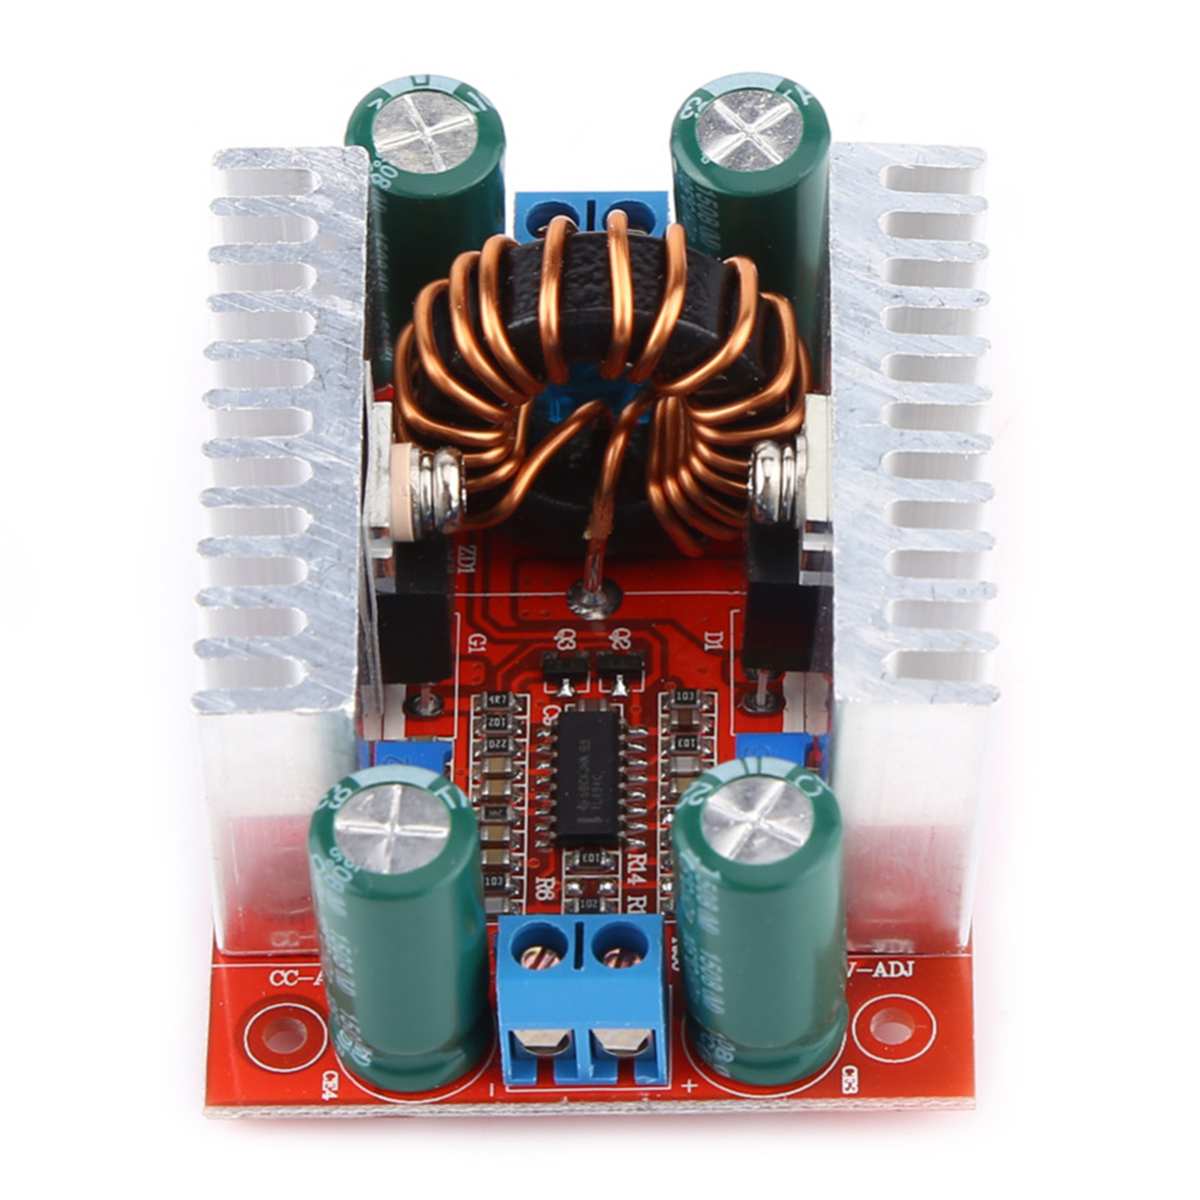 400W DC-DC Step-up Boost Converter Constant Current Power Supply Module LED Driver Step Up Voltage Module 67 x 48 x 28mm цена